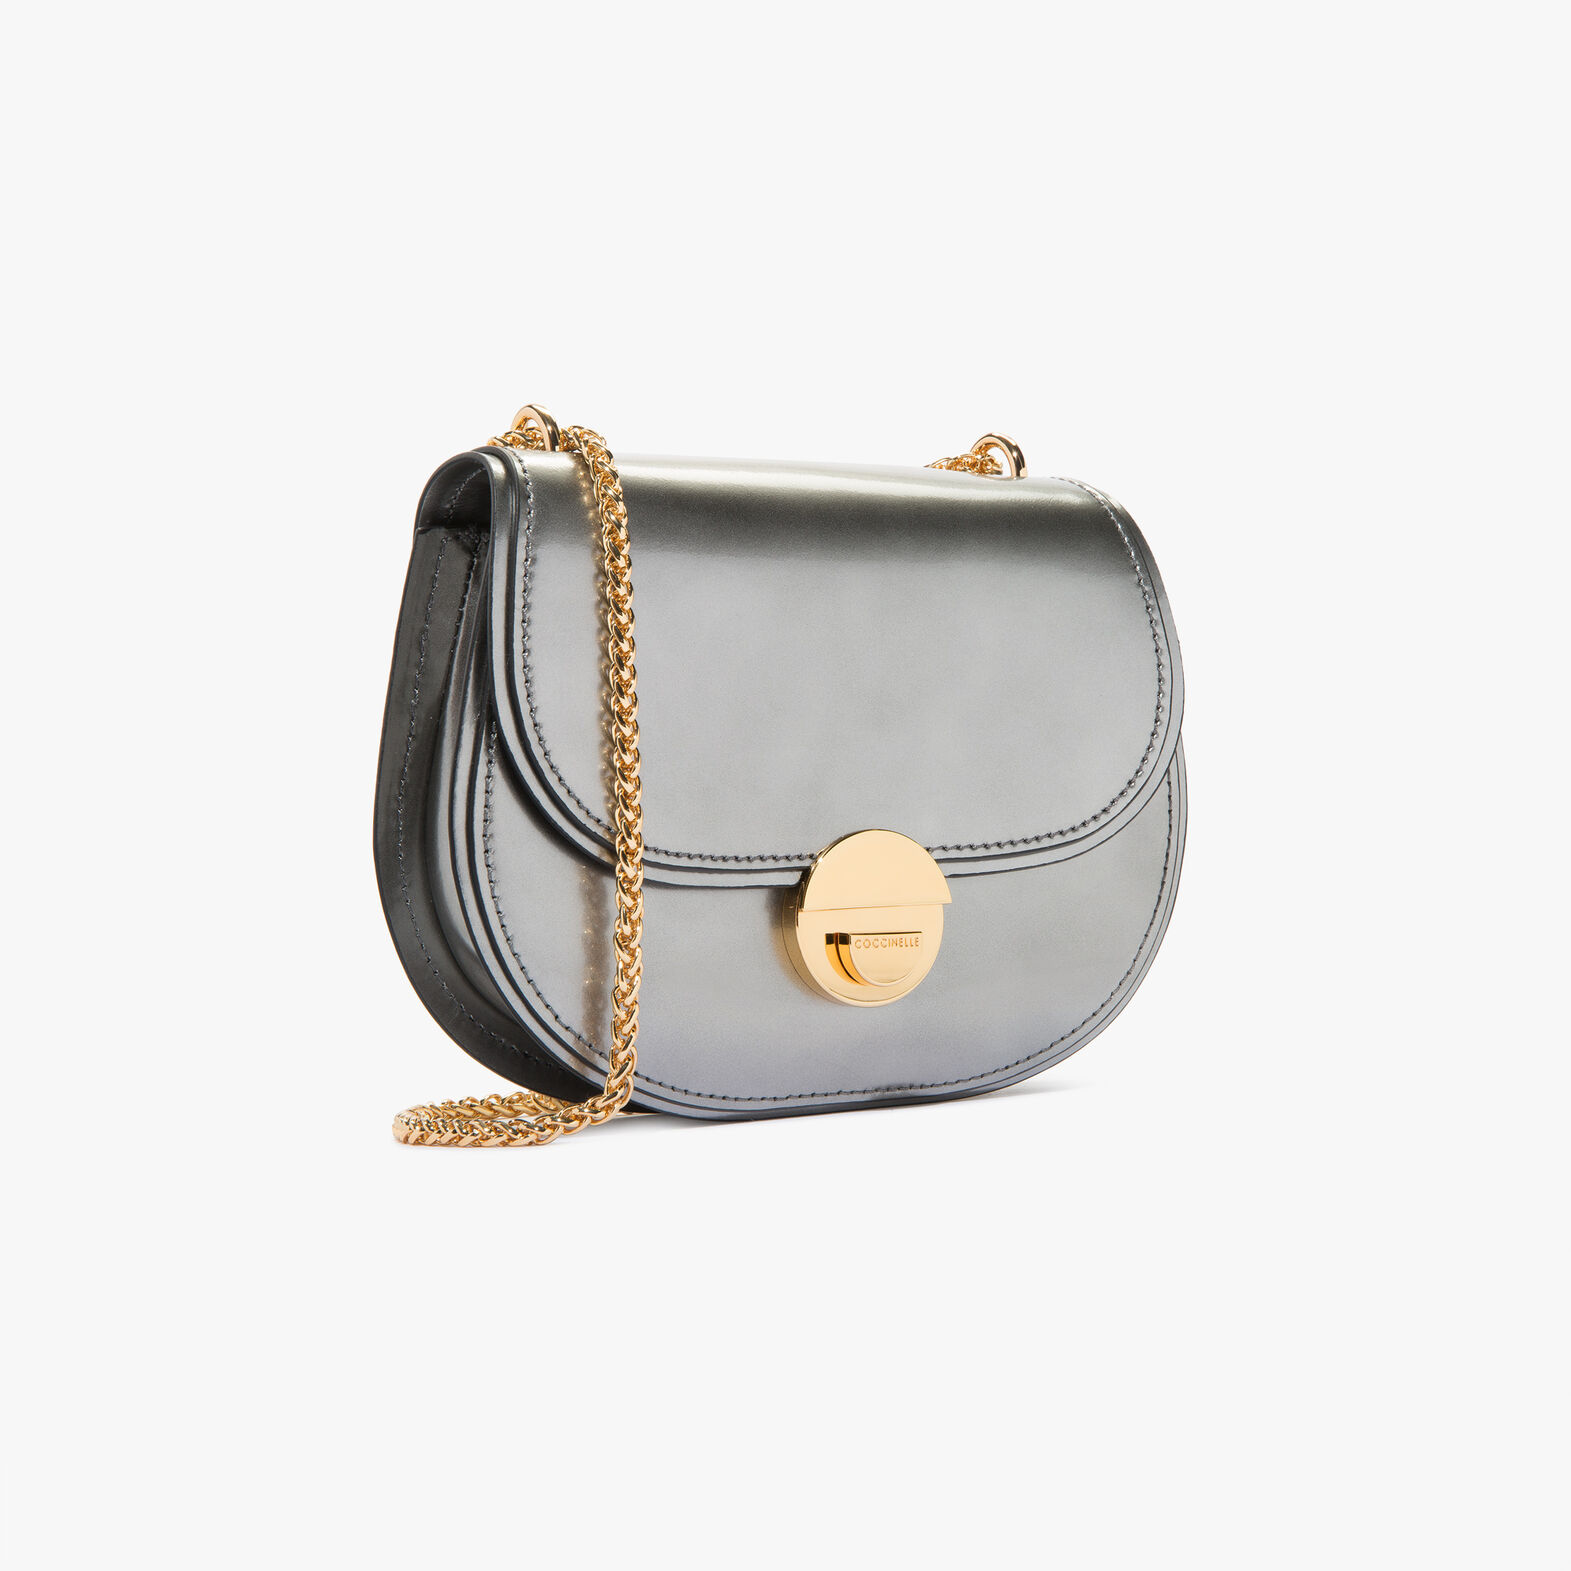 Coccinelle Violaine leather mini bag